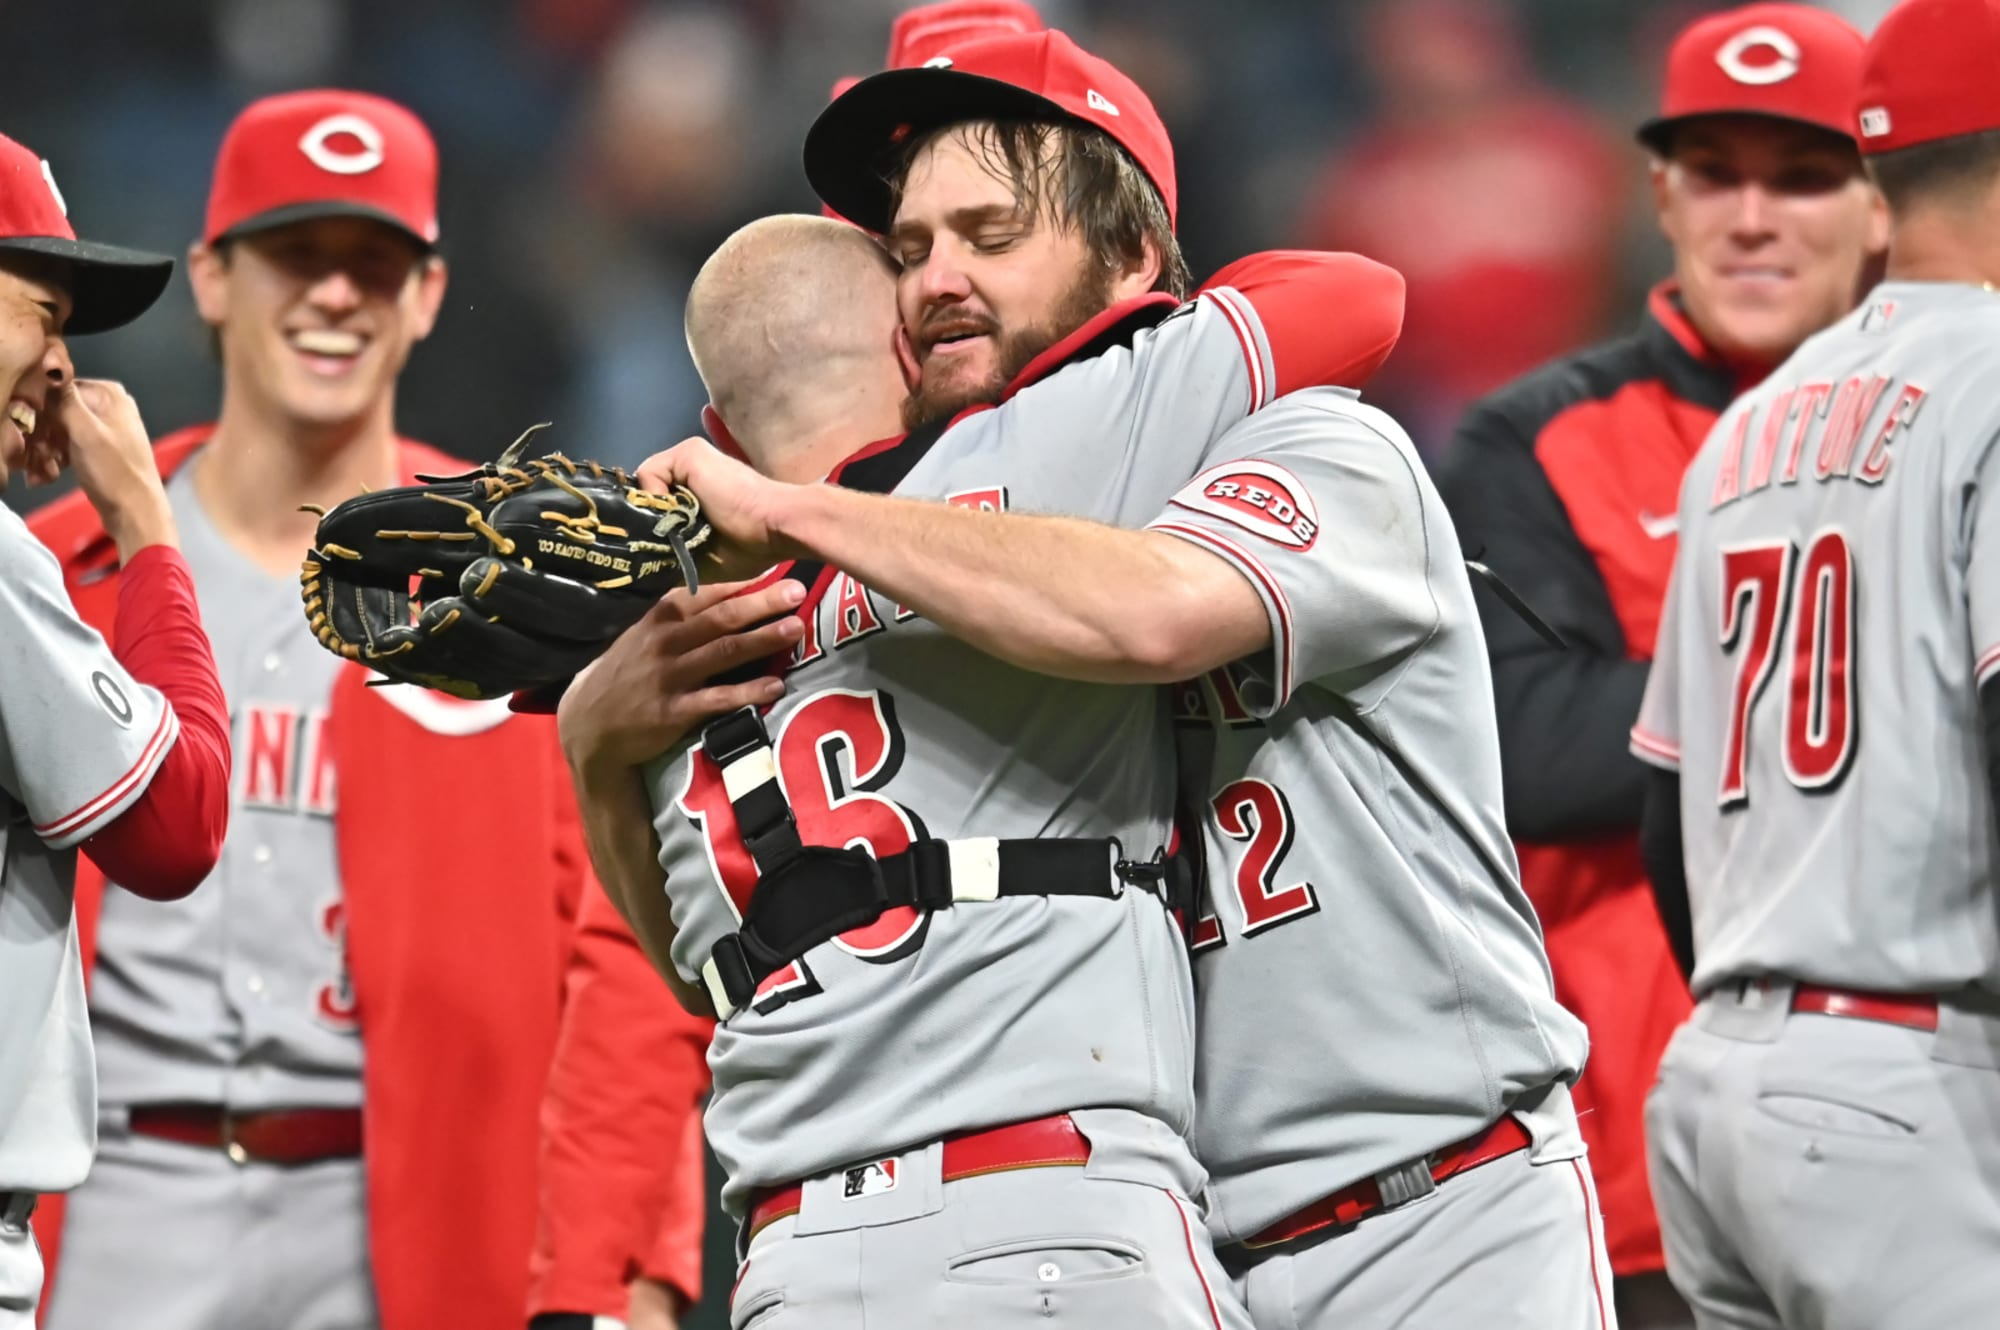 Baseball world reacts to Wade Miley's no-hitter against Indians thumbnail